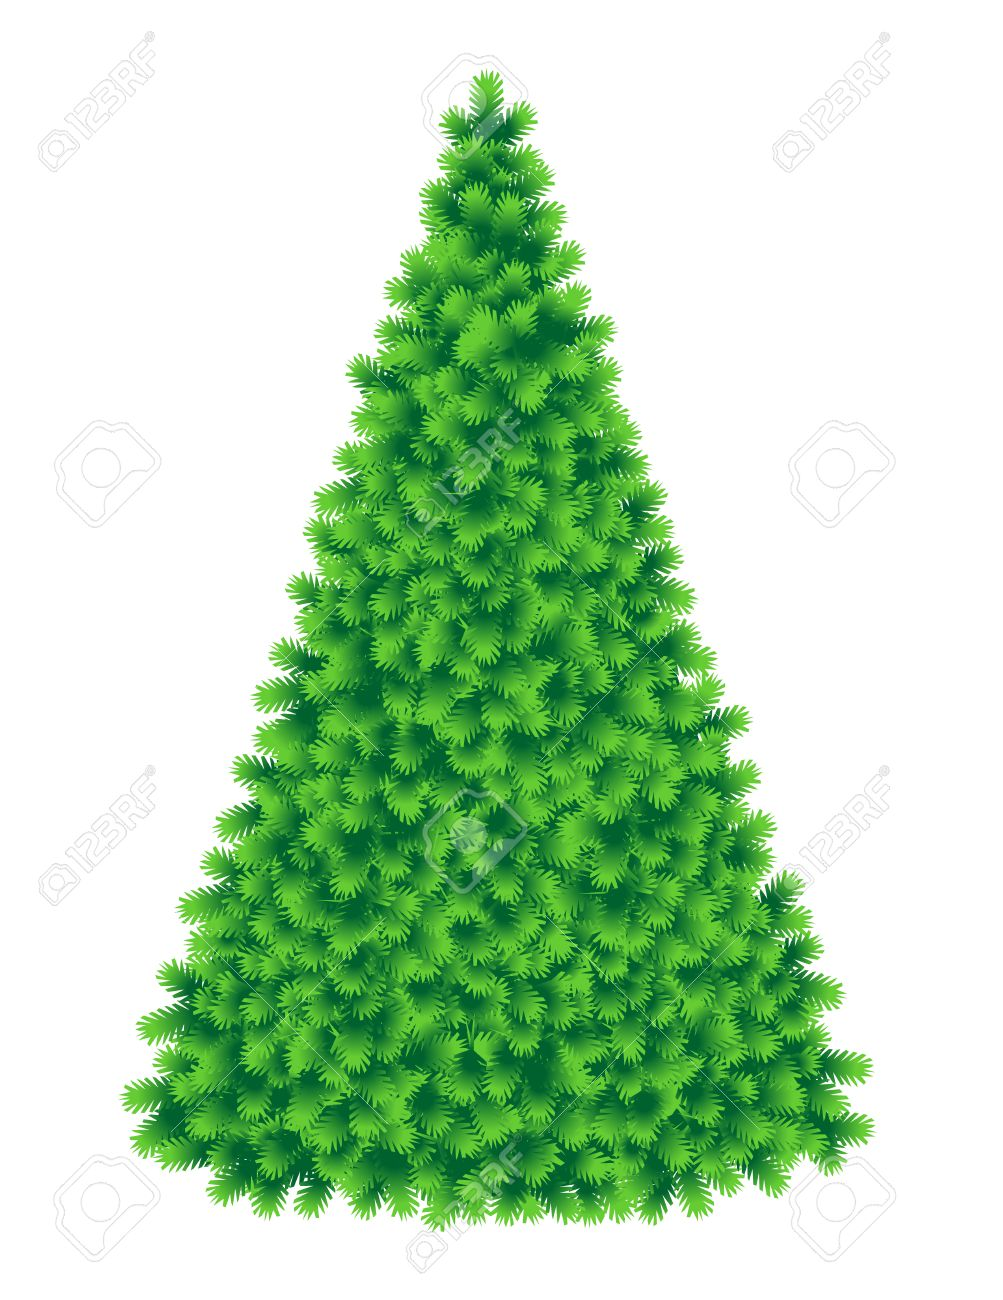 Christmas tree, tall and fluffy, of live green color, without baubles,  ornaments